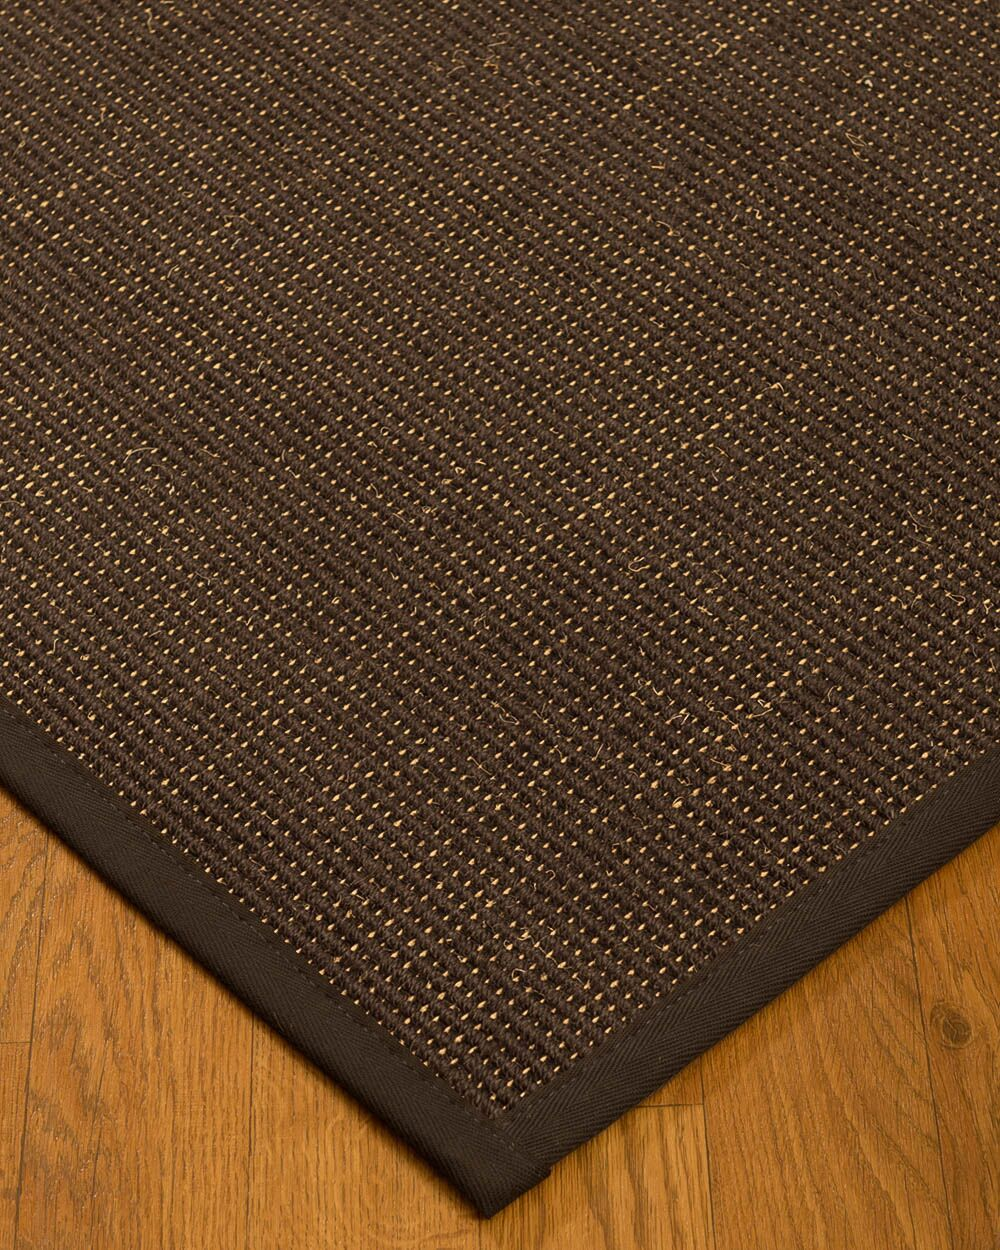 Kersh Border Hand-Woven Brown Area Rug Rug Size: Rectangle 6' x 9', Rug Pad Included: Yes